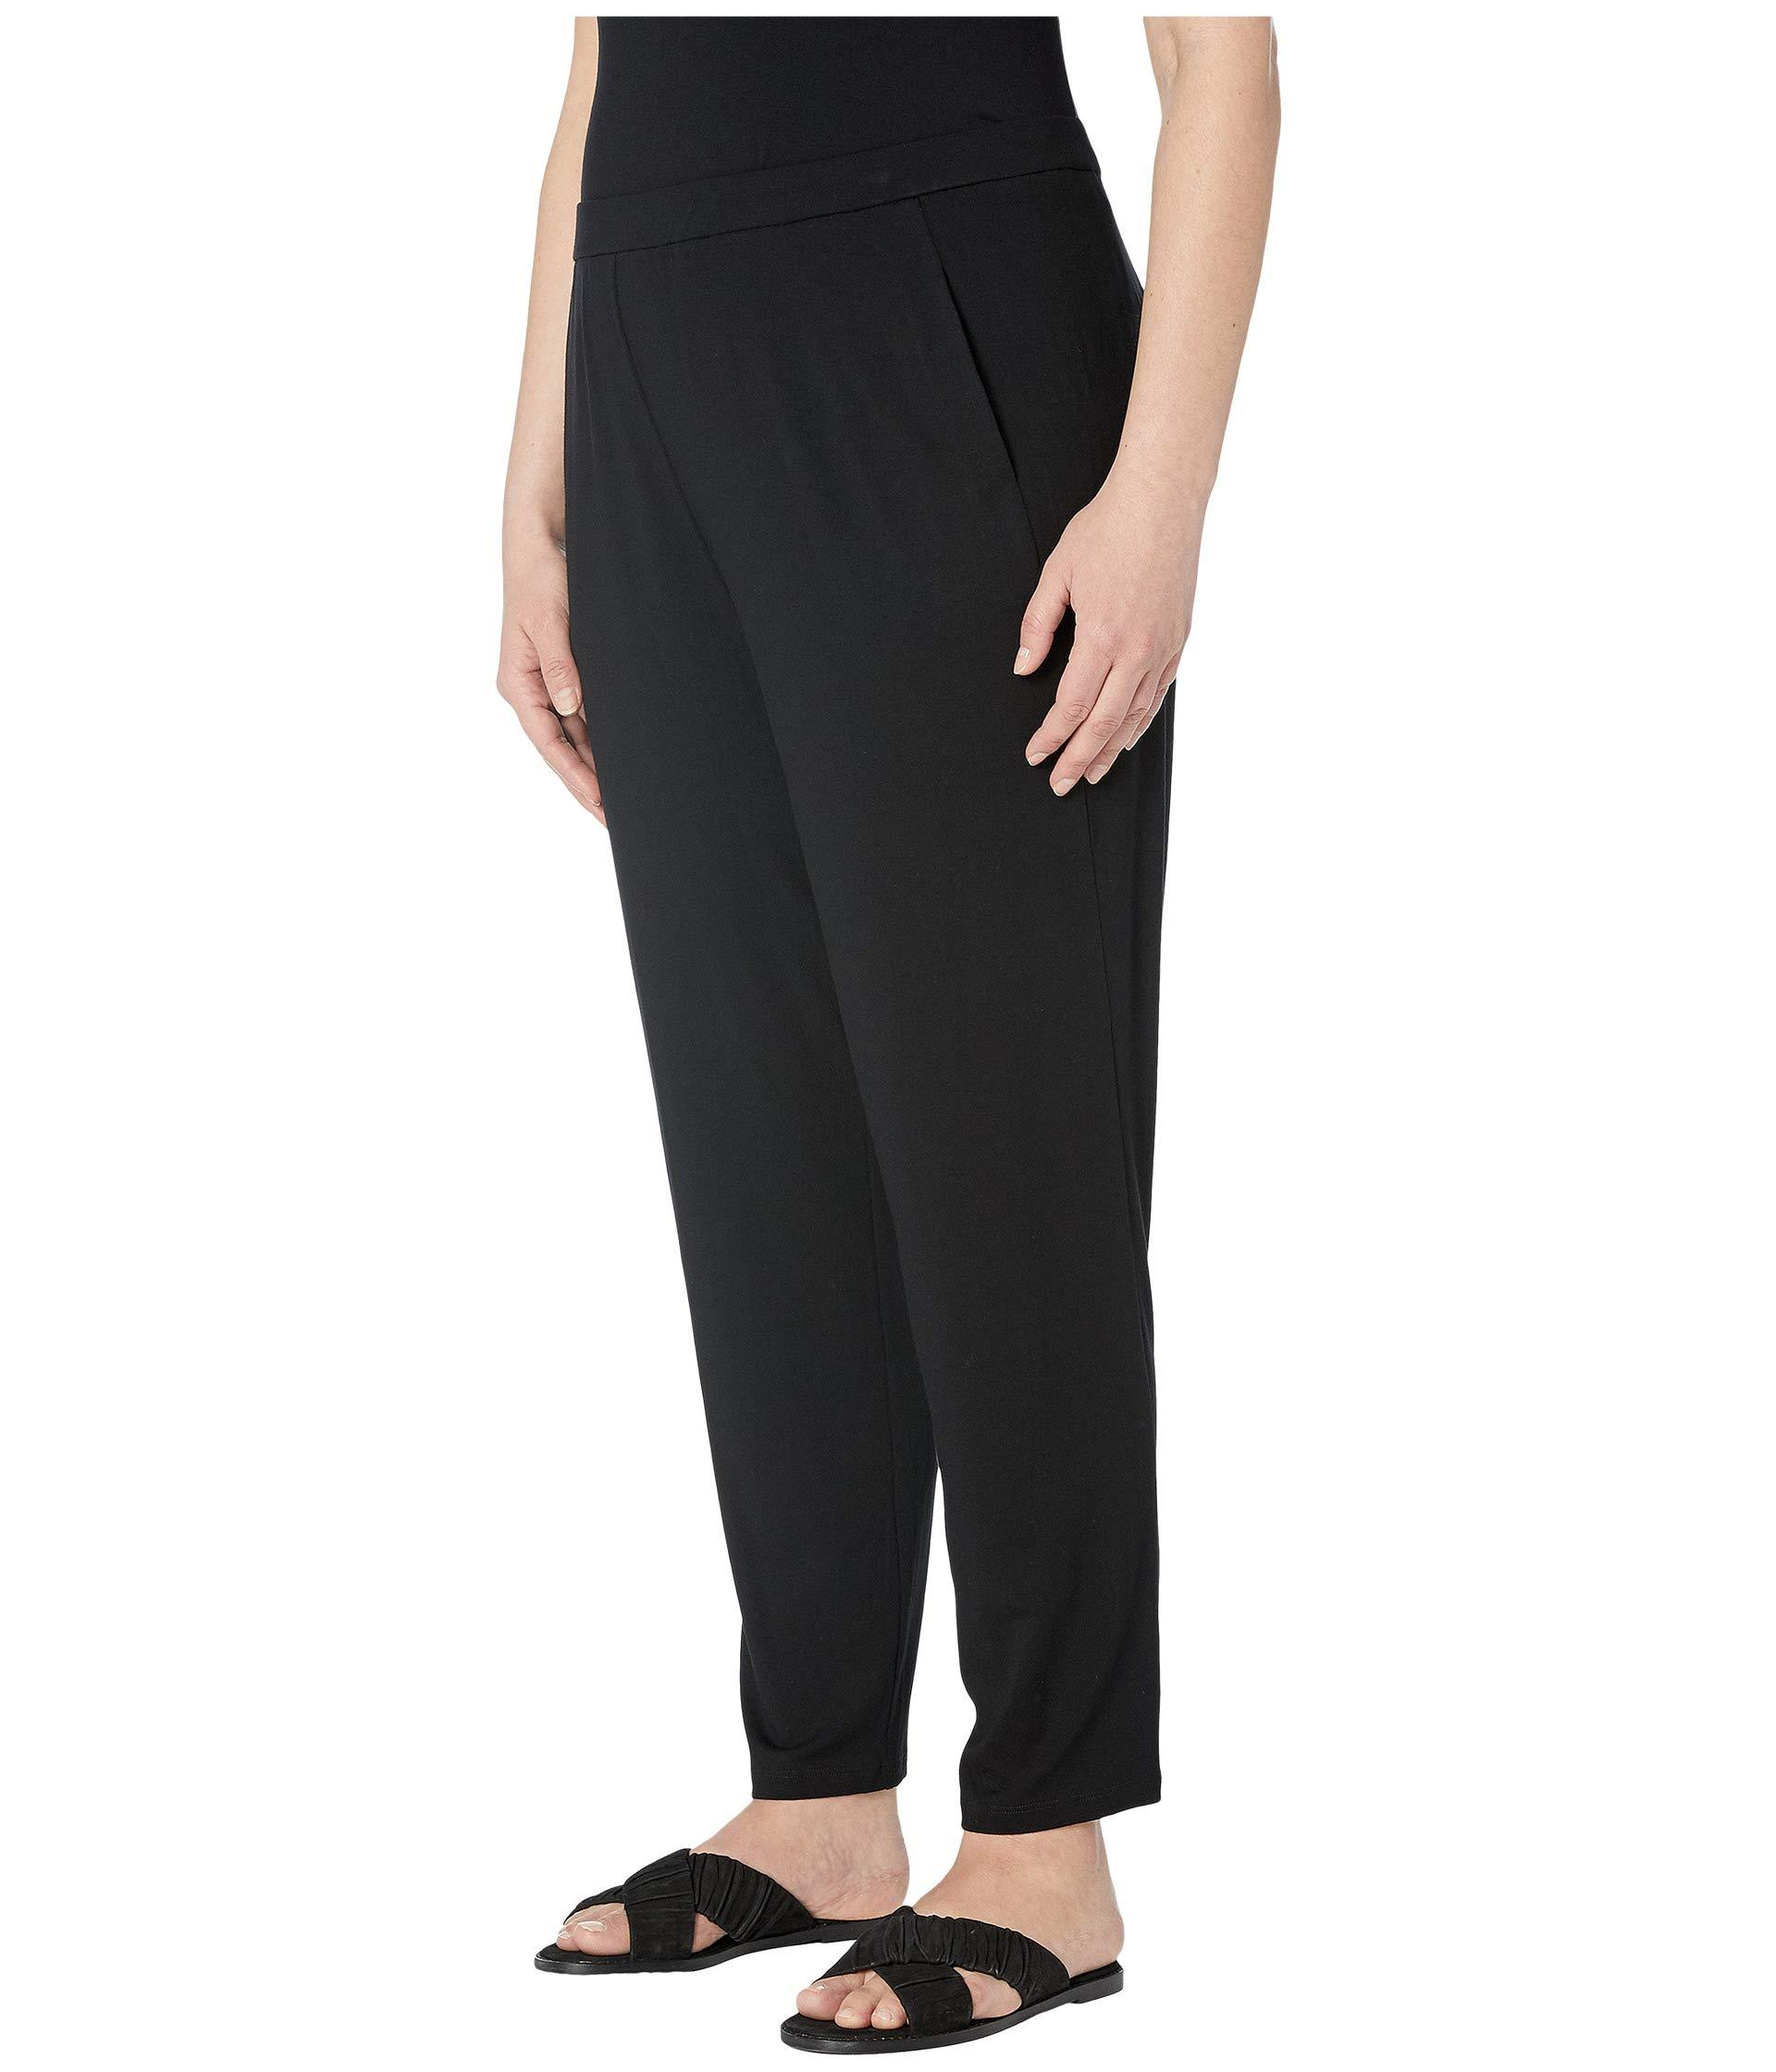 d30d3070bf2 Lyst - Eileen Fisher Plus Size Vicose Jersey Slim Ankle Slouchy Pants  (black) Women s Casual Pants in Black